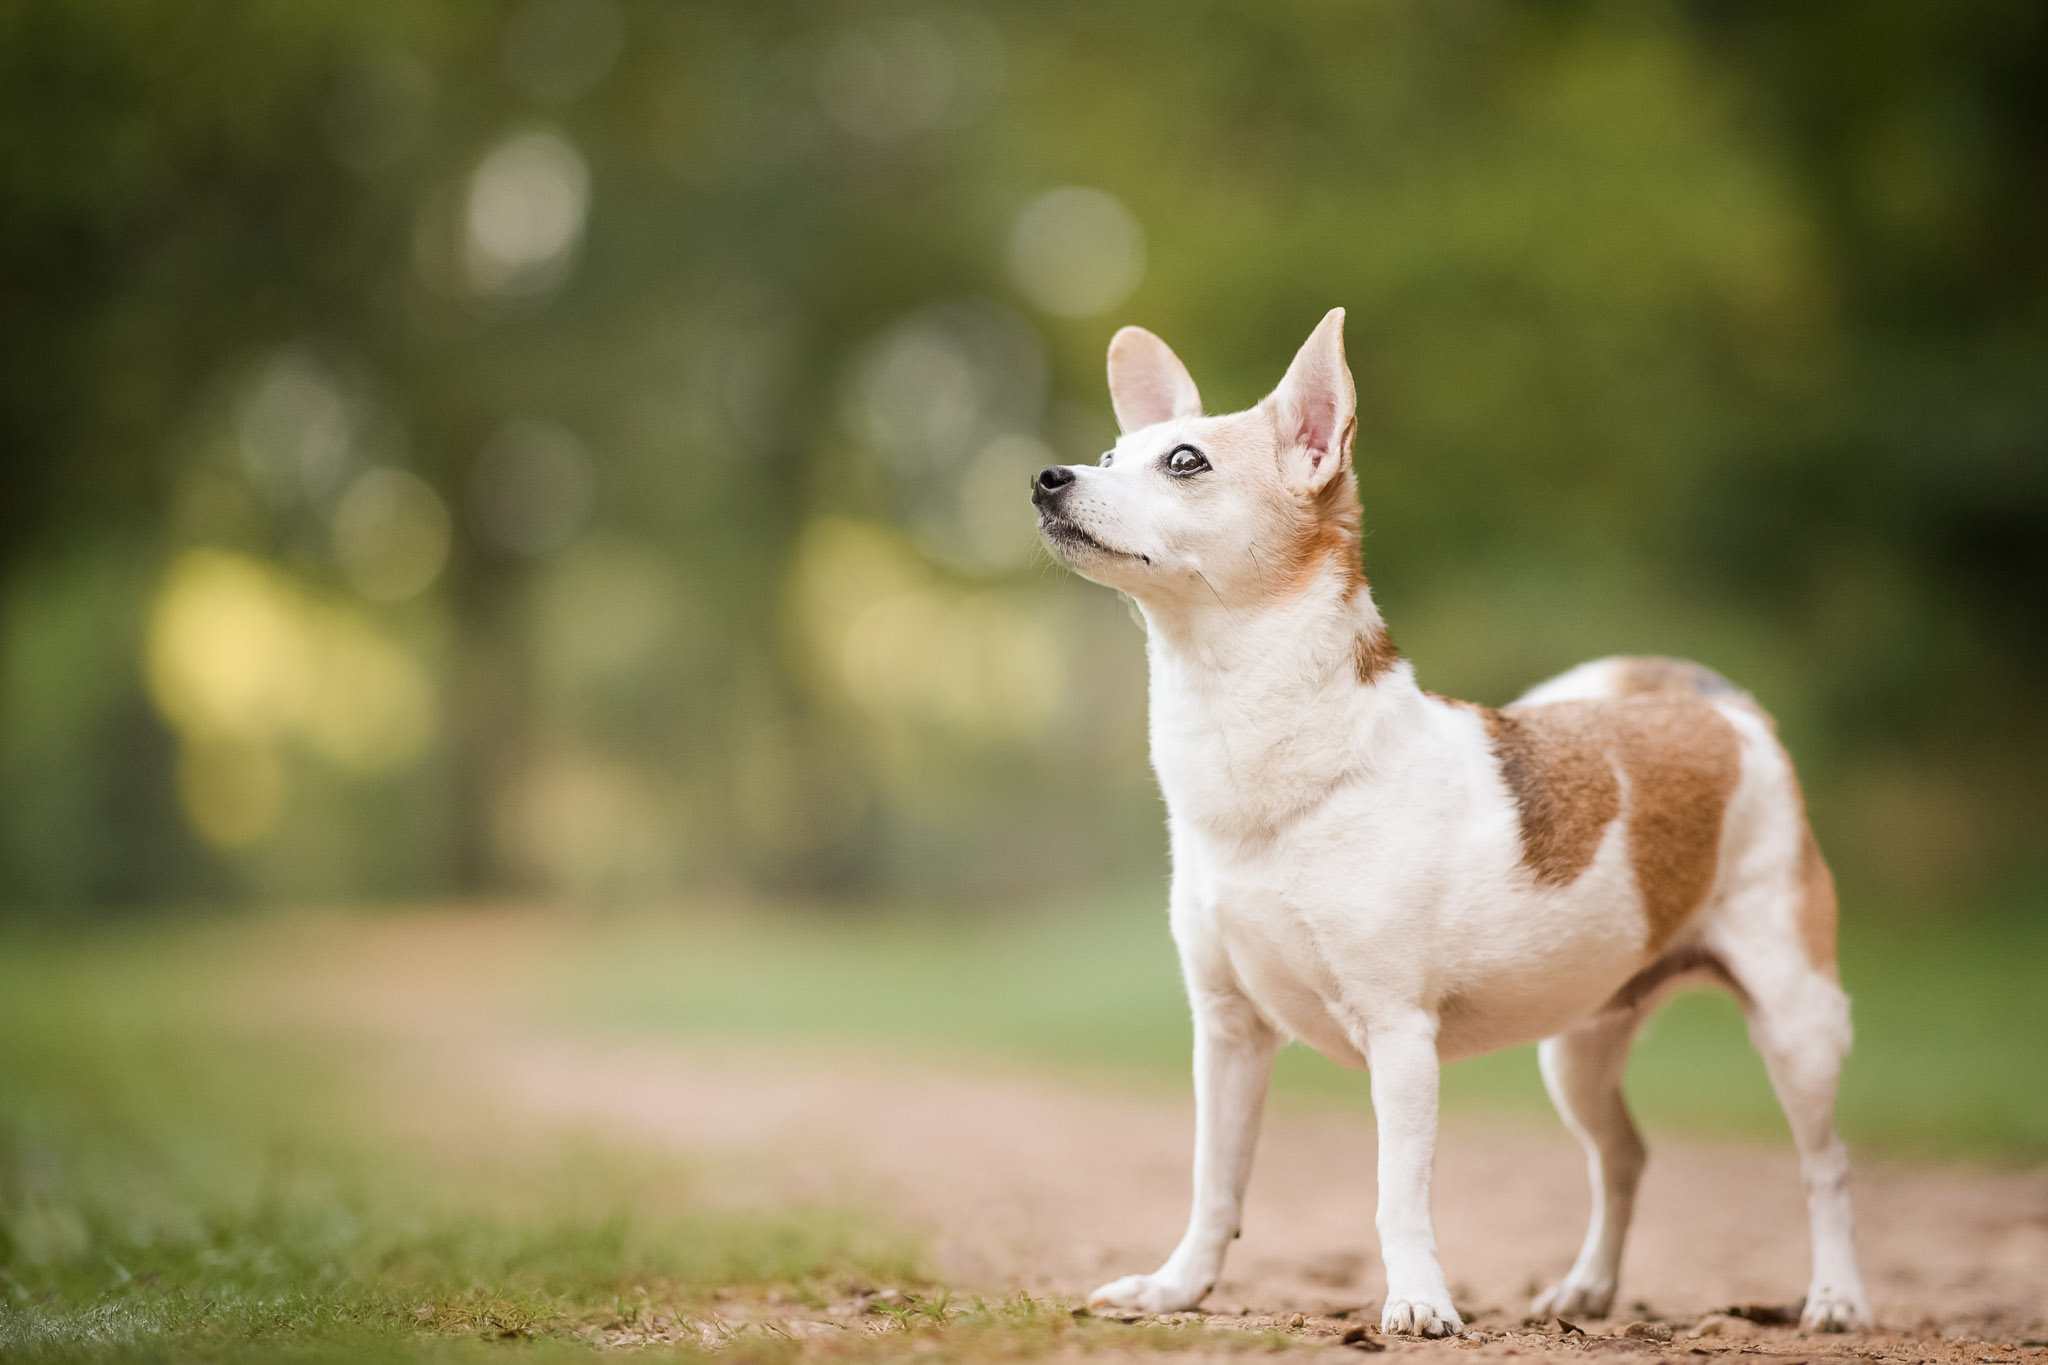 Learn why a sunrise session might be perfect for your dog with Atlanta pet photographer CM Bryson